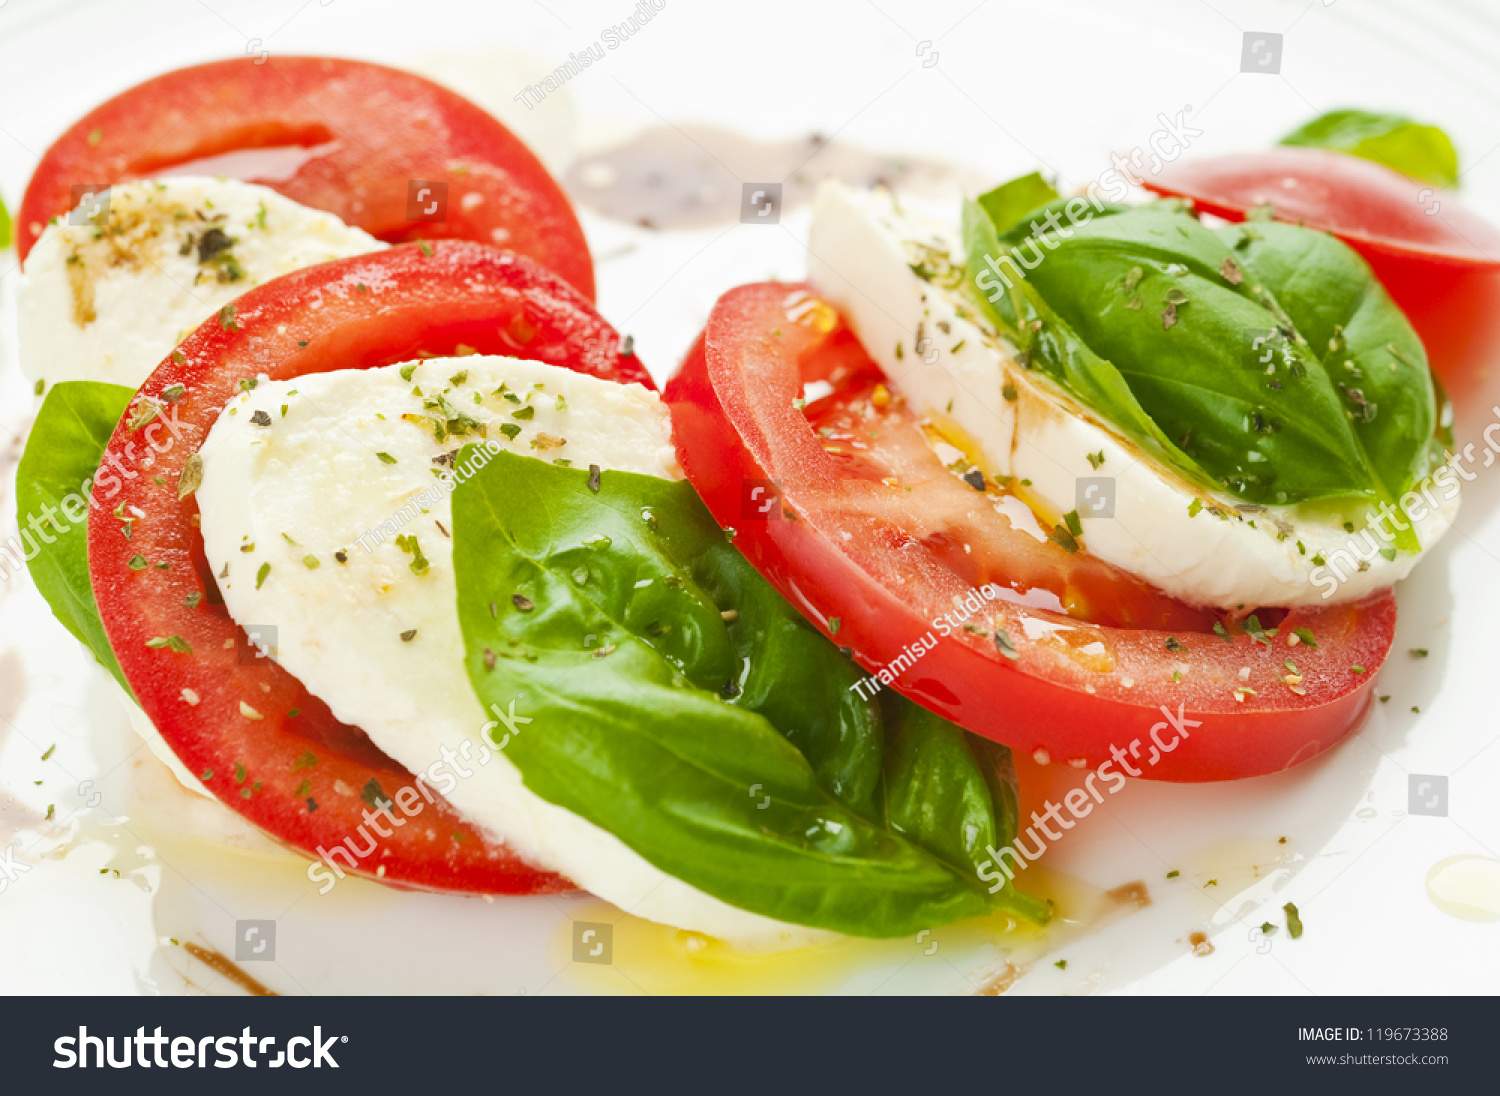 Caprese Salad With Mozzarella, Tomato, Basil And Balsamic ...